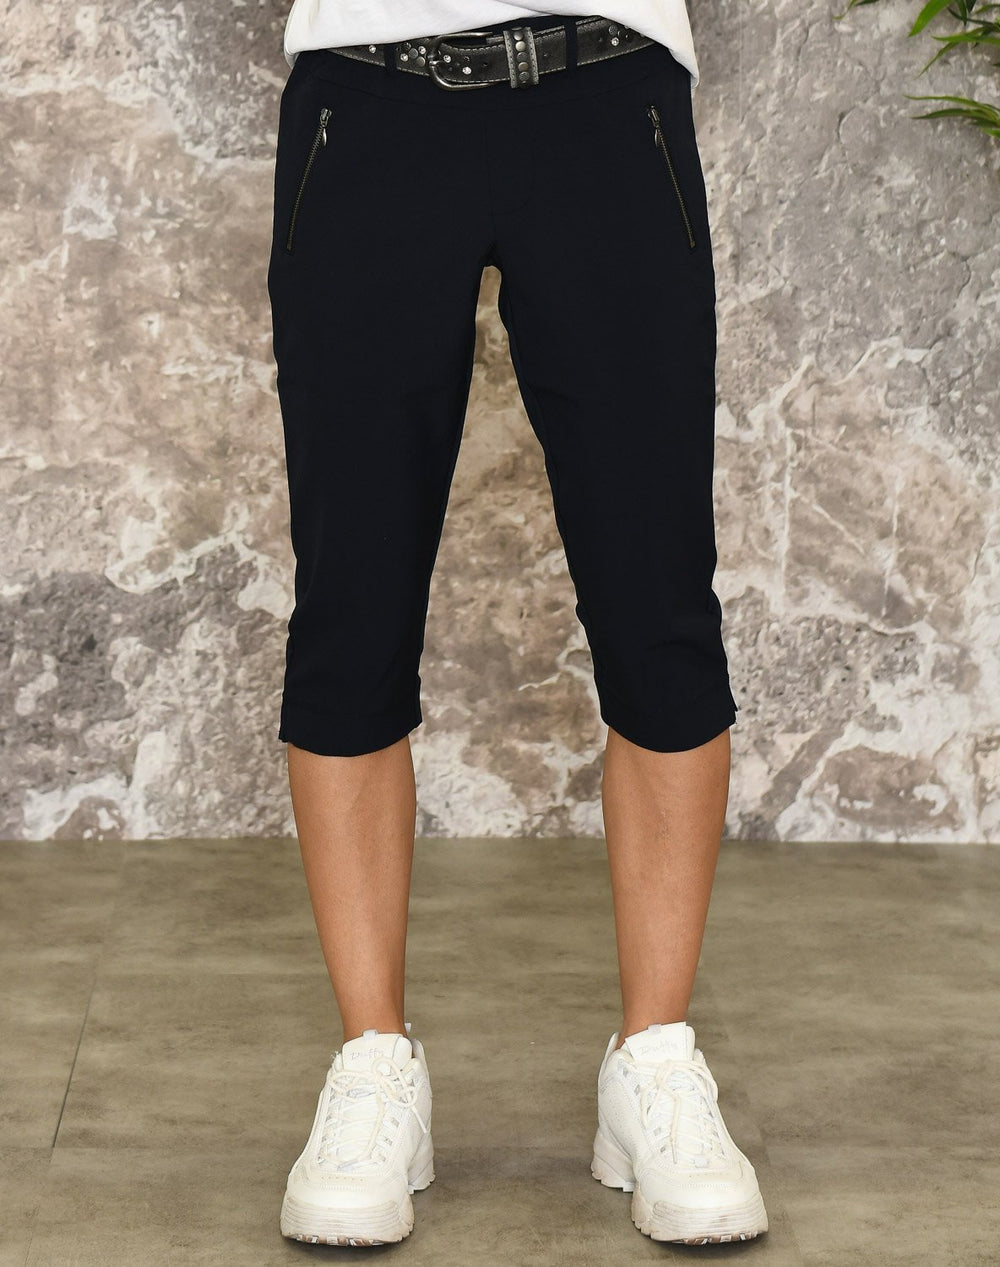 Kaffe KAjillian Vilja capri pants midnight marine - Online-Mode